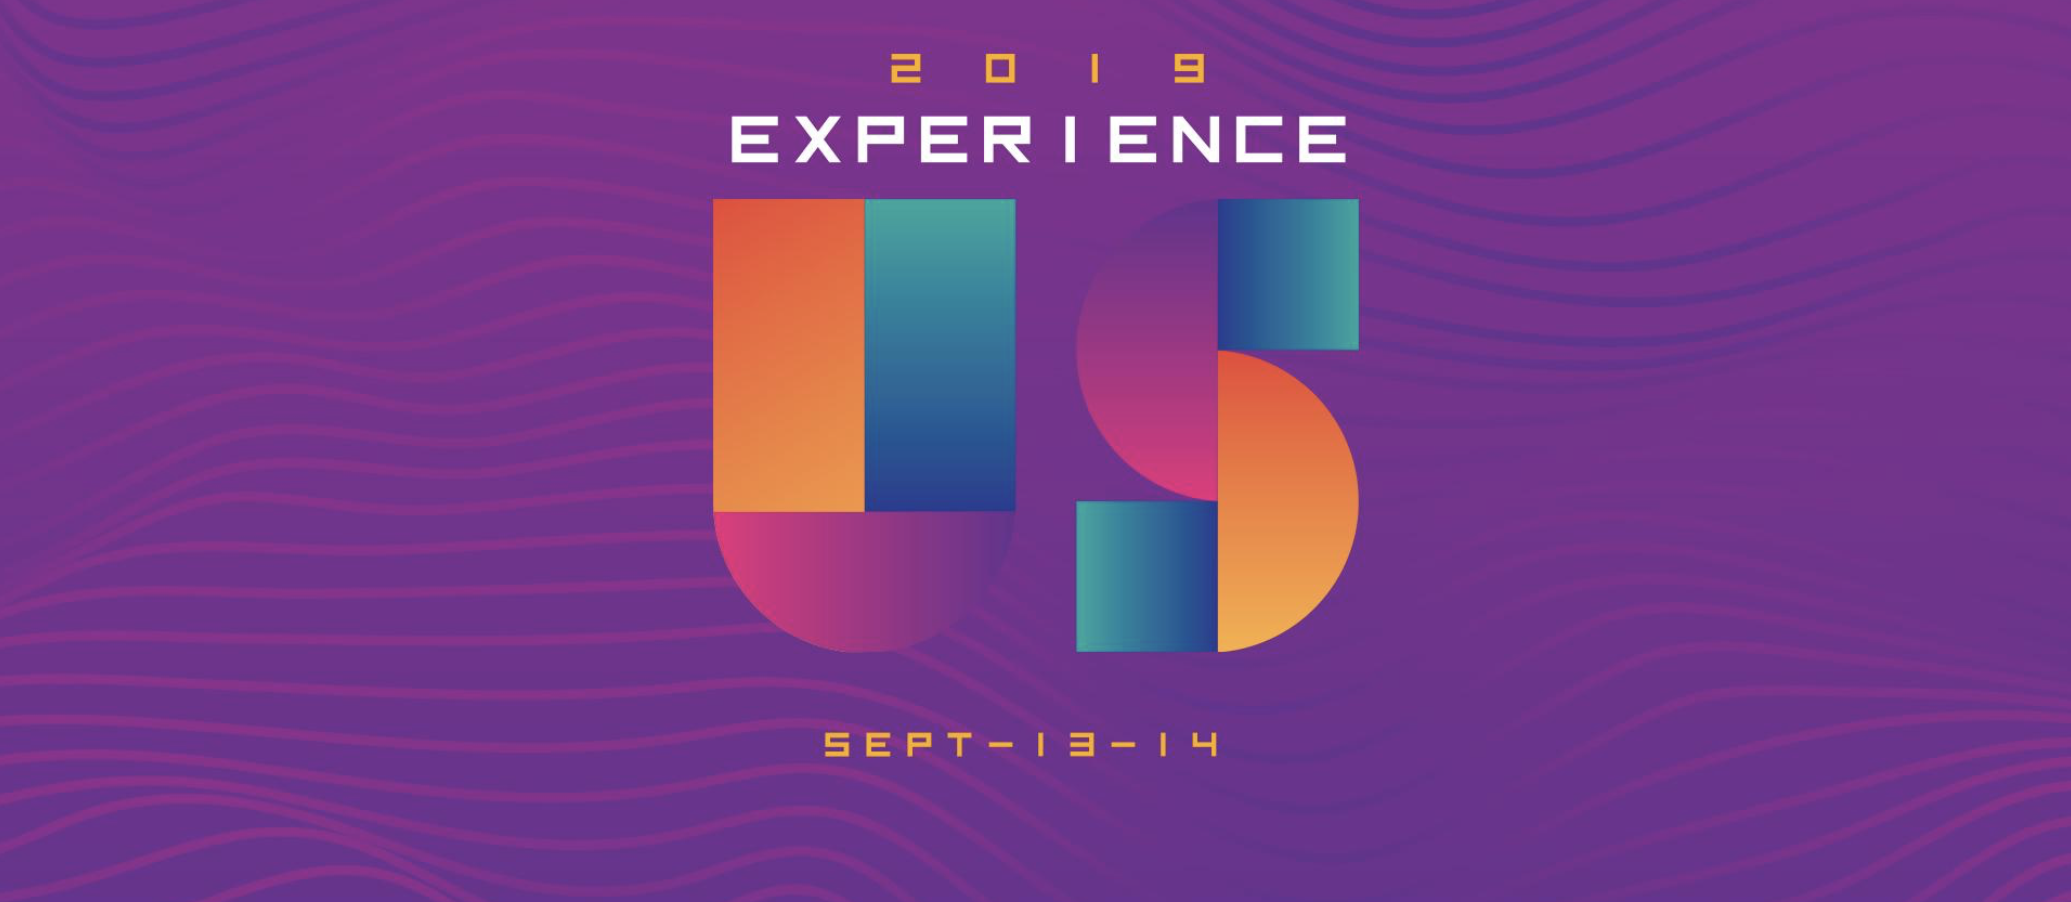 experience2019.png